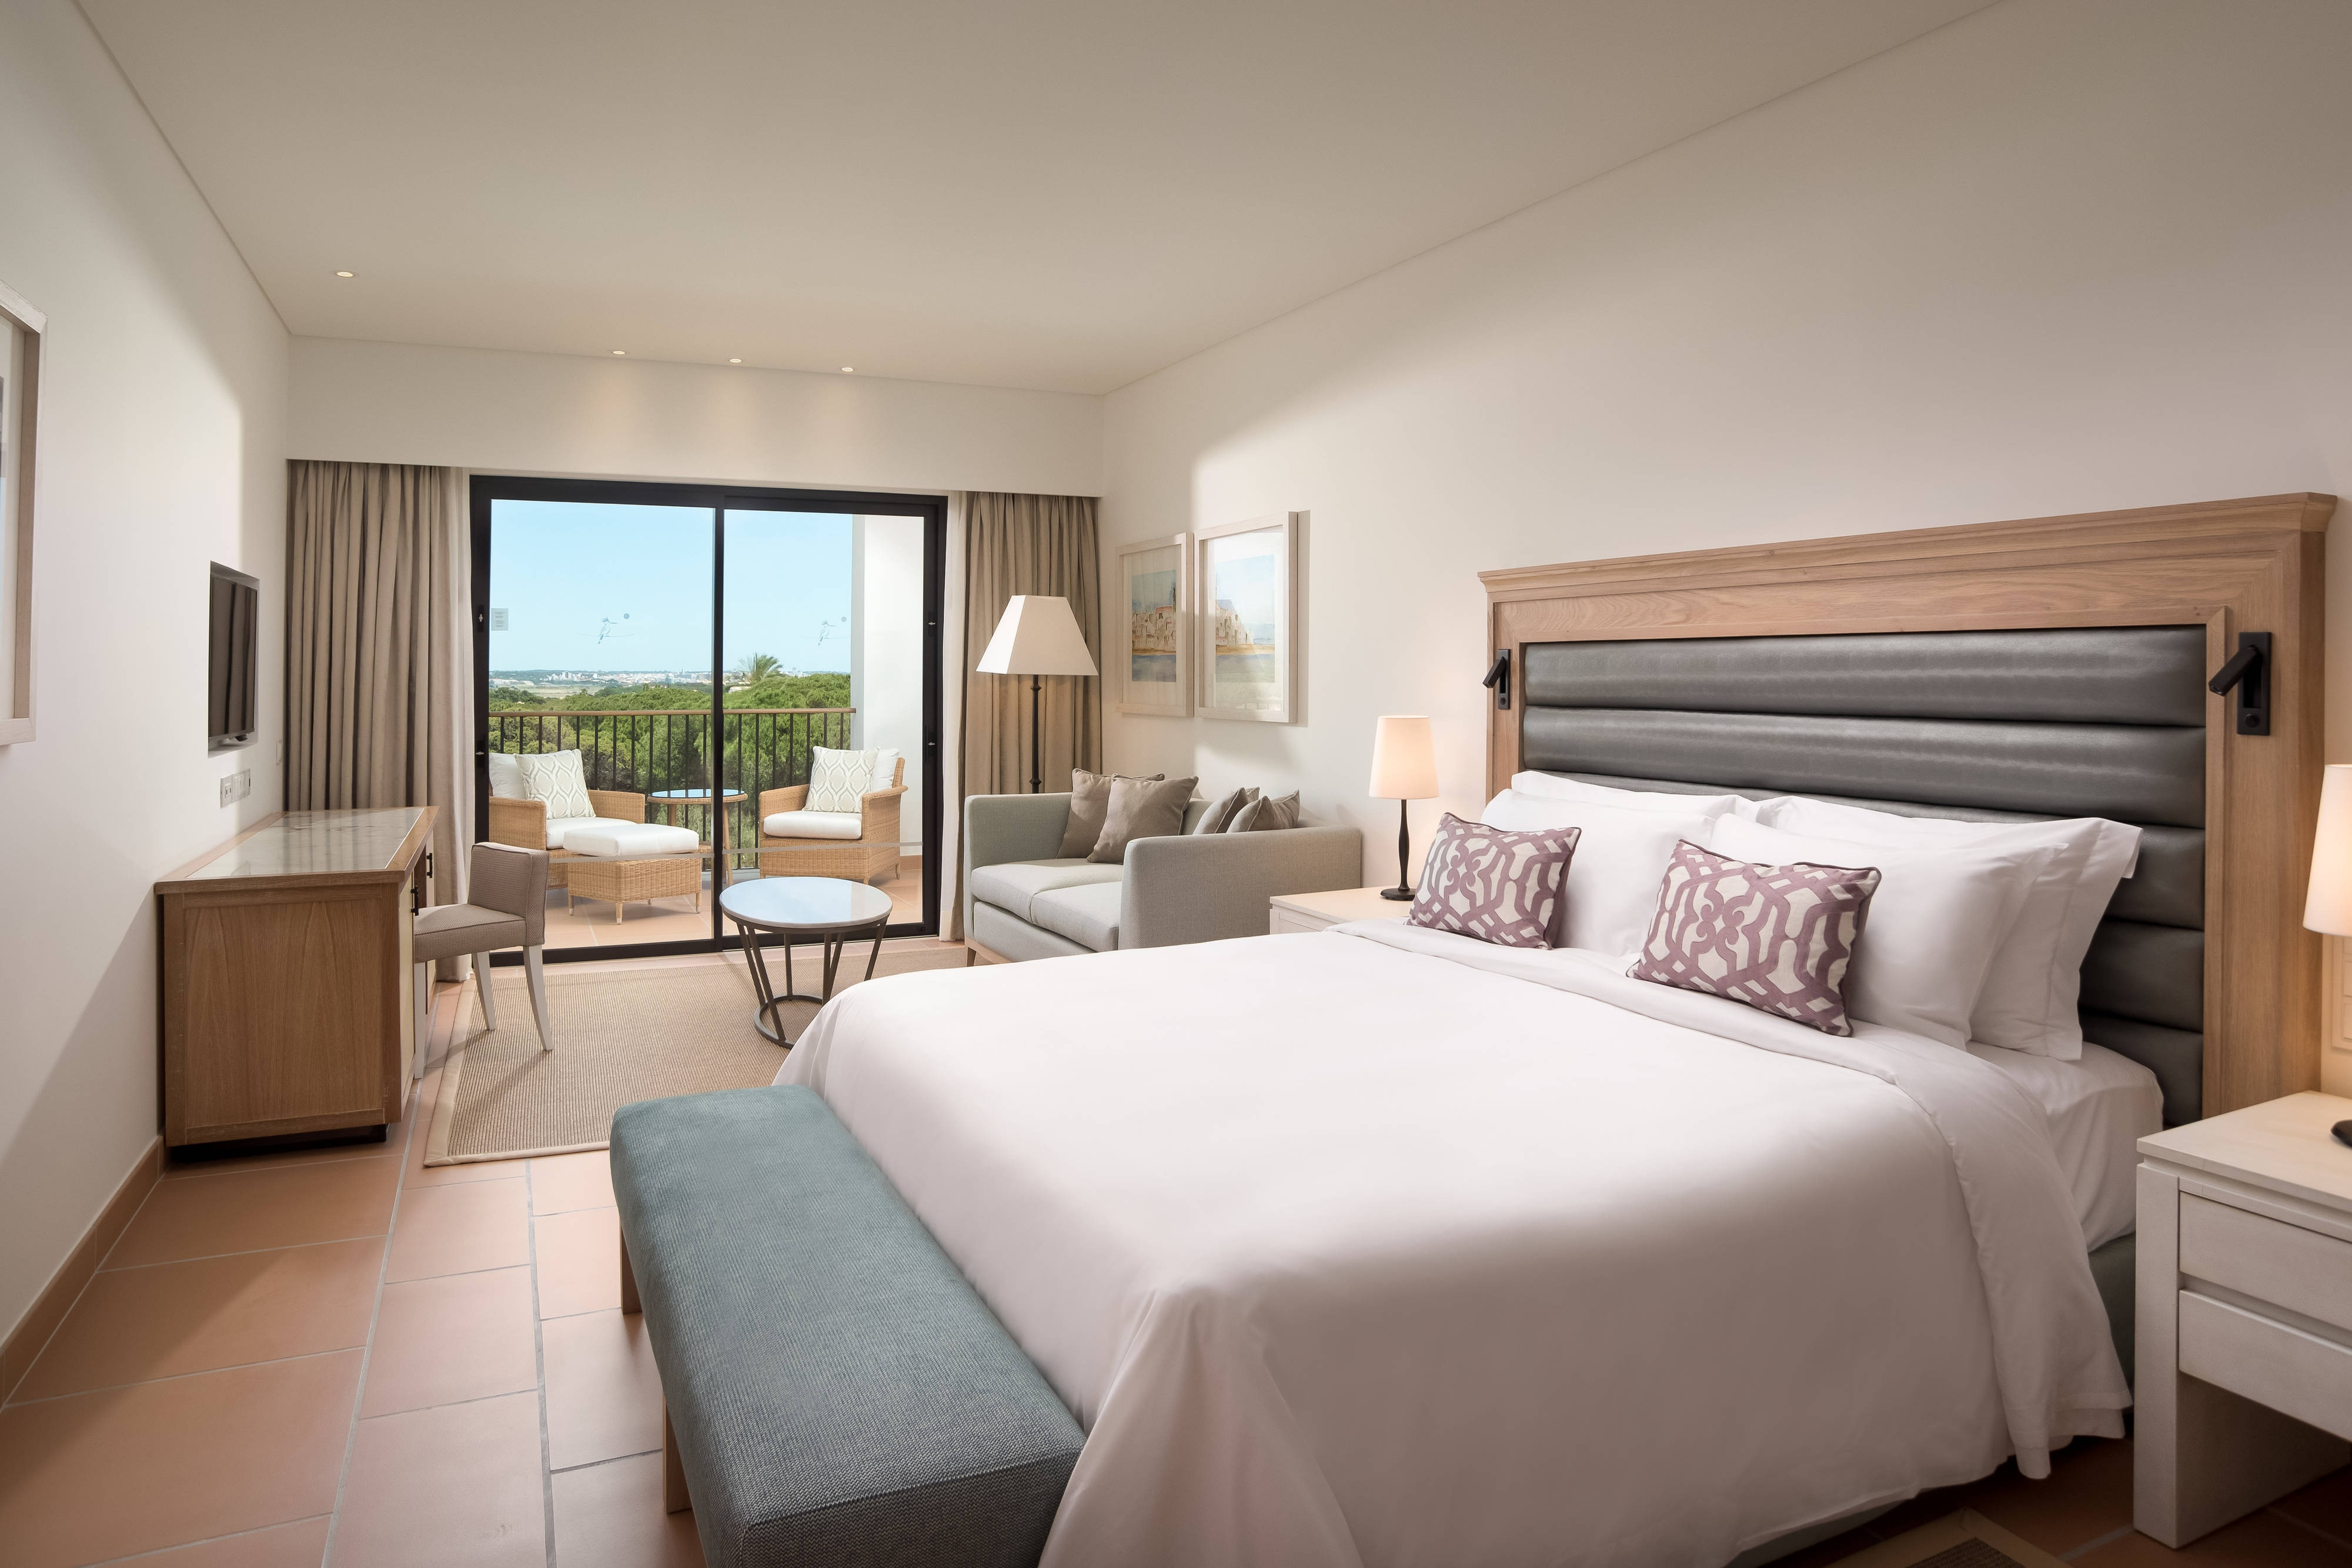 Suite Ocean Junior en el piso superior